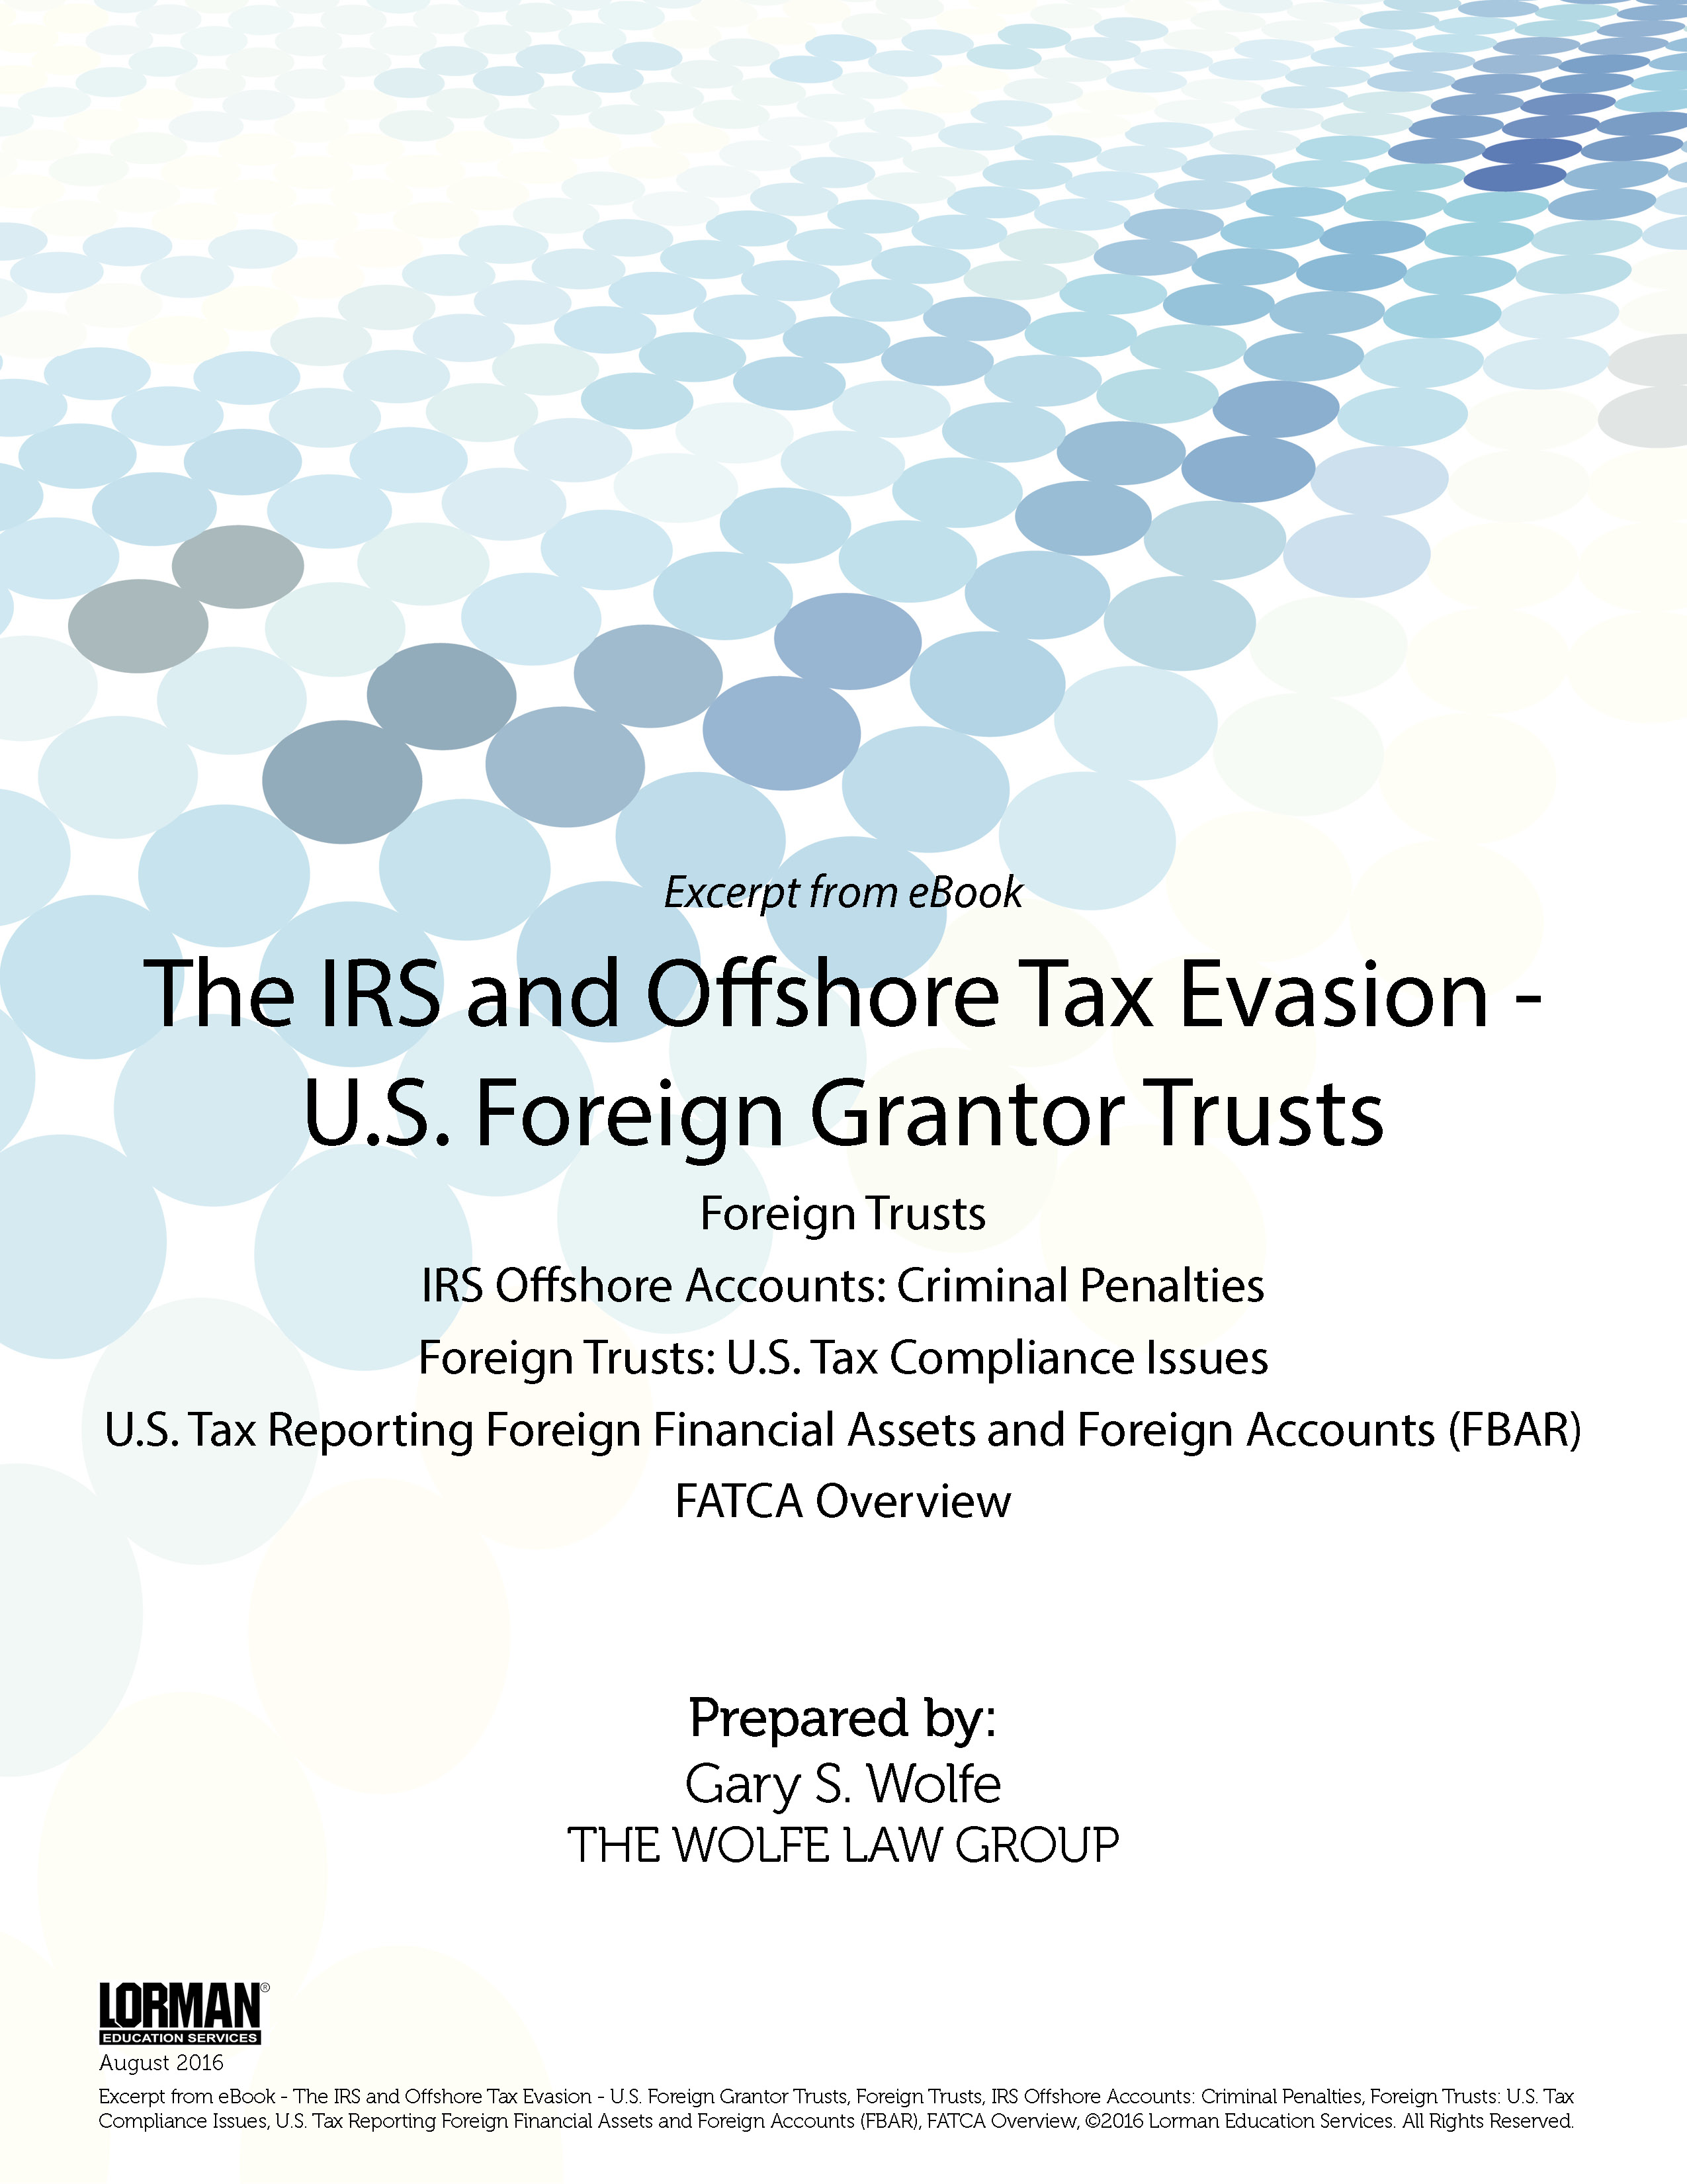 The IRS and Offshore Tax Evasion - U.S. Foreign Grantor Trusts - Criminal Penalties, U.S. Tax Compliance Issues